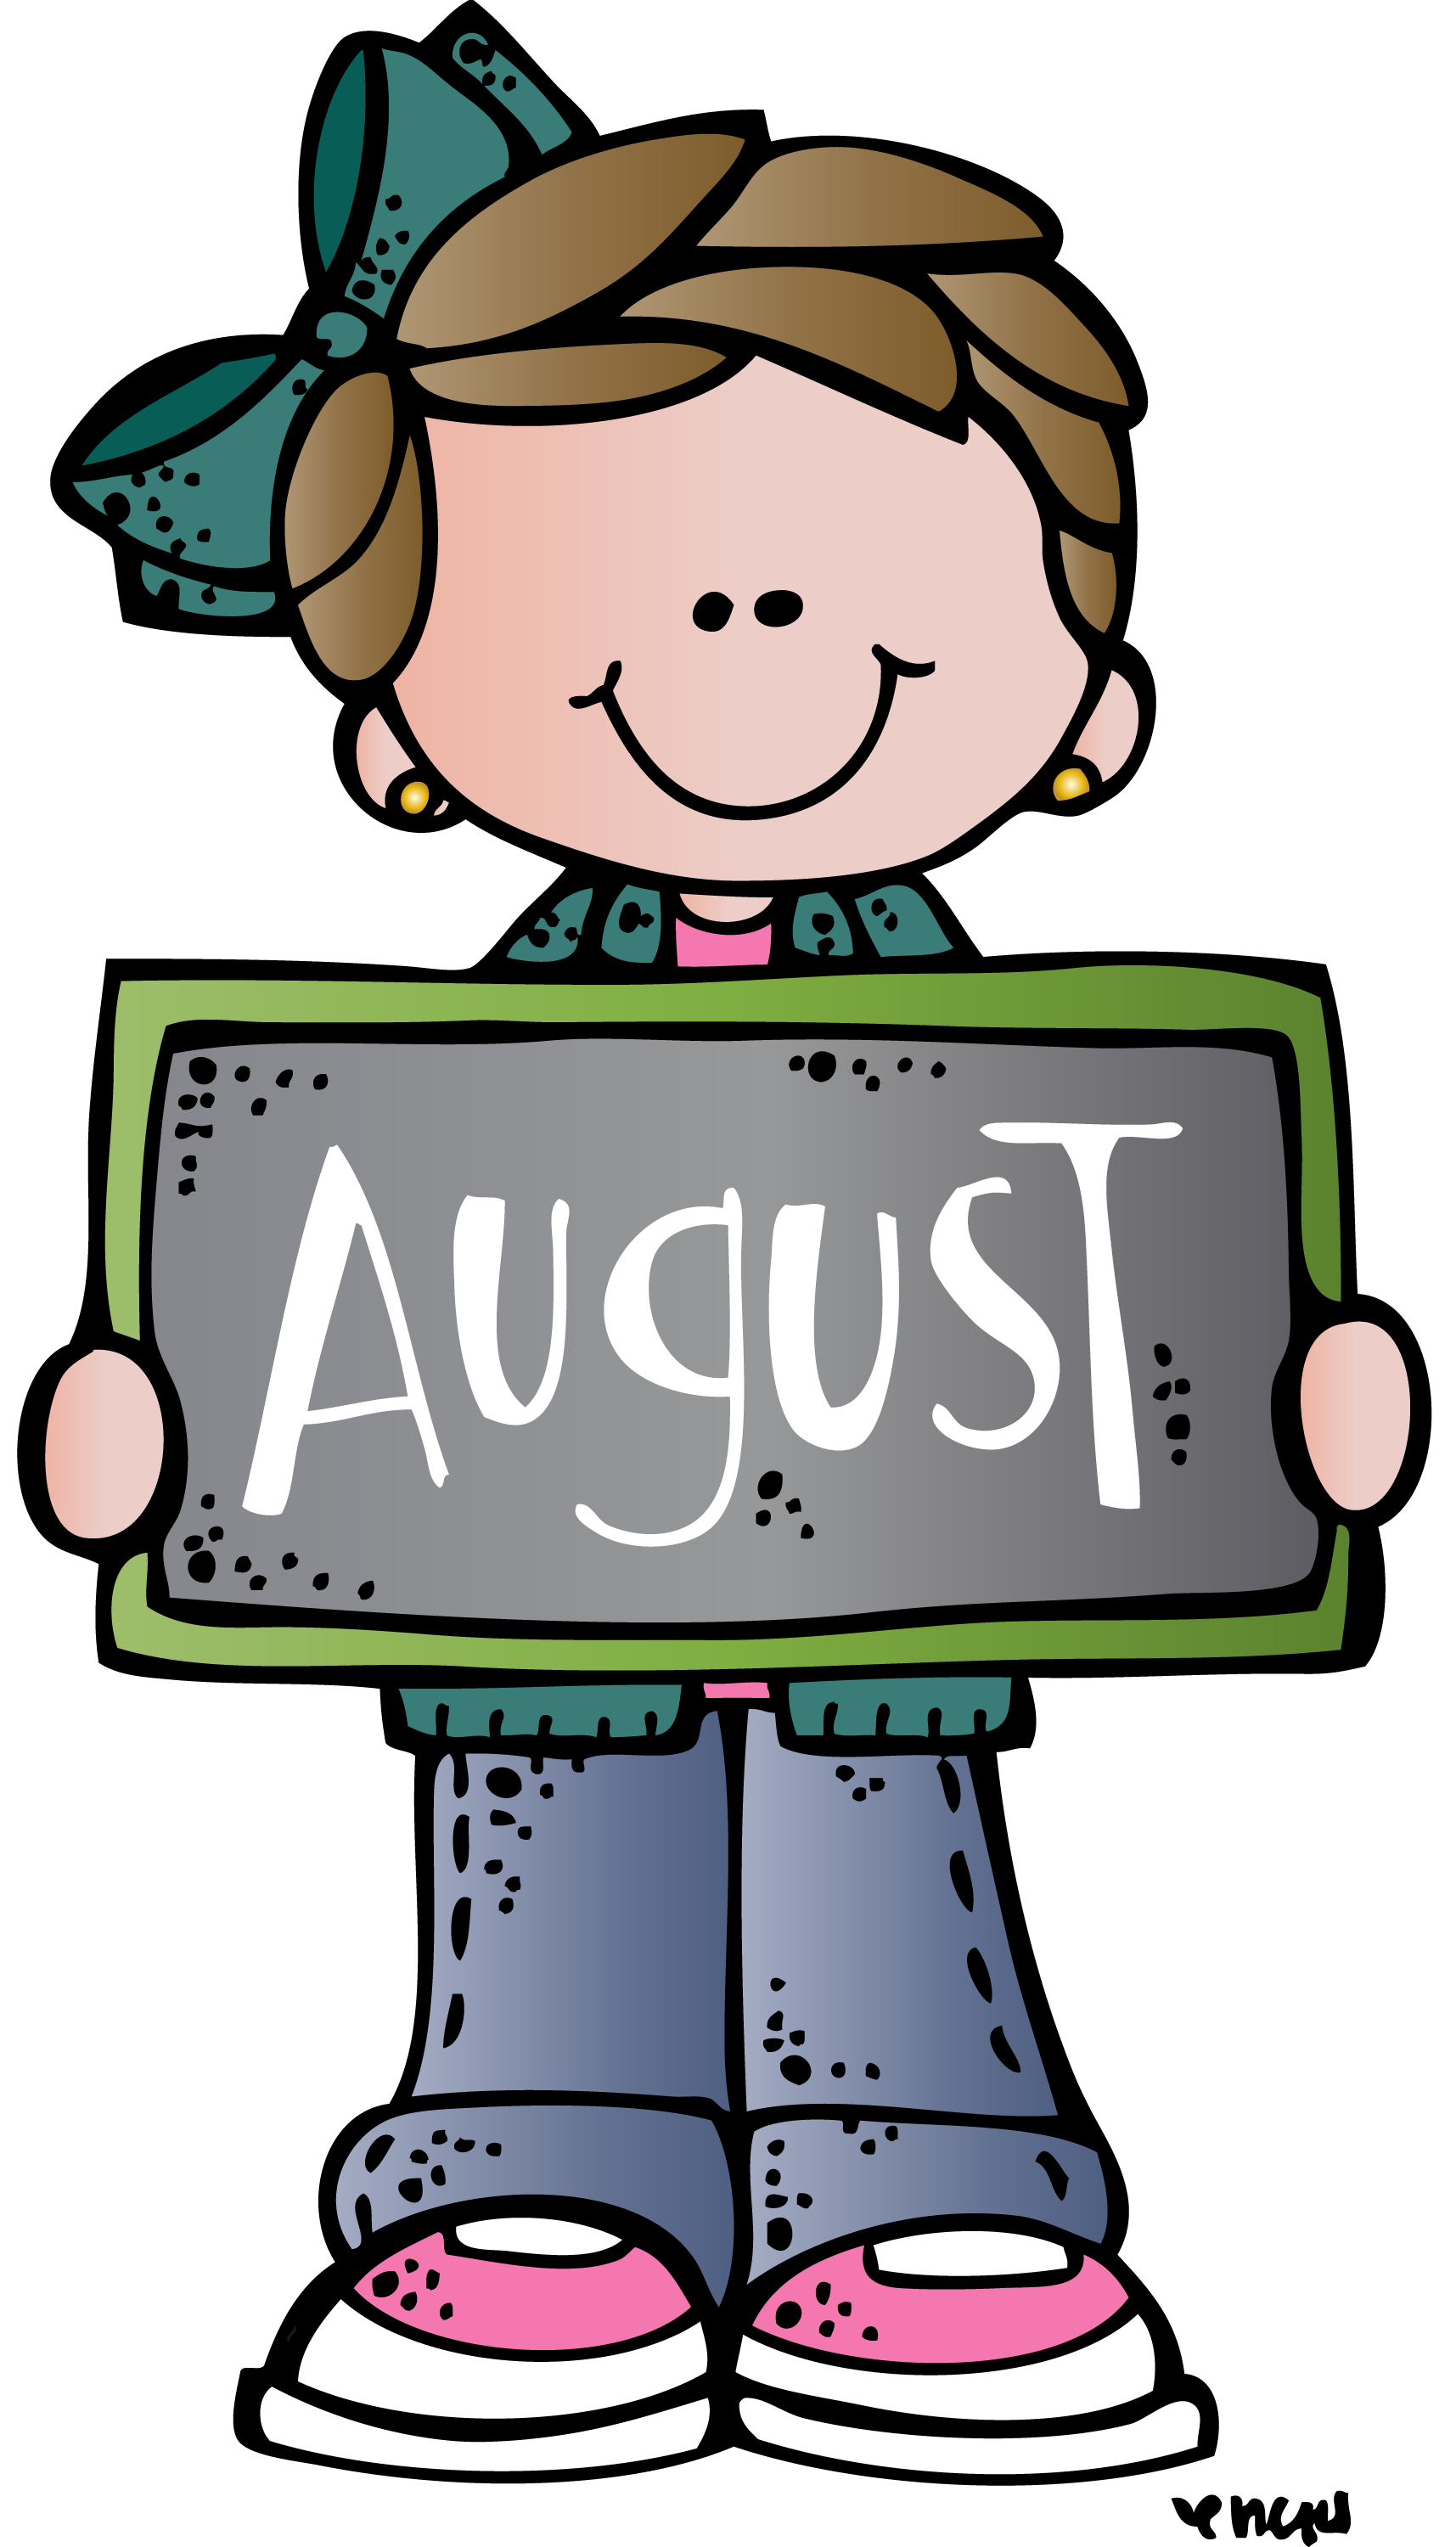 September back to school clipart graphic royalty free download august mel | Melonheadz | Pinterest | Clip art, School and Teacher graphic royalty free download